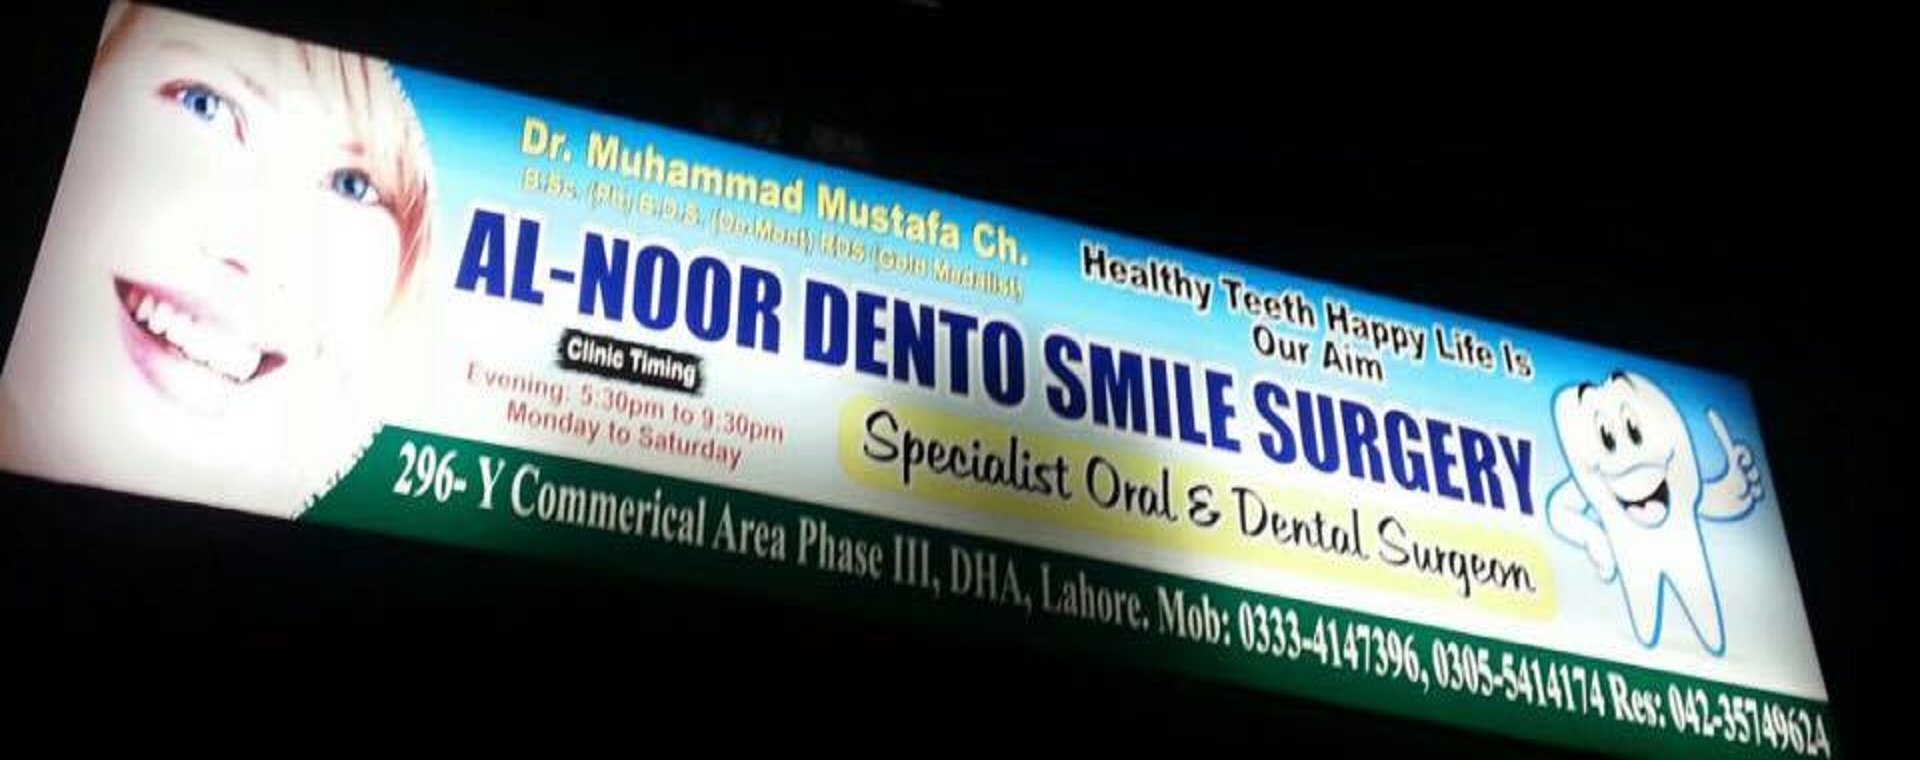 Al noor dento smile surgery front